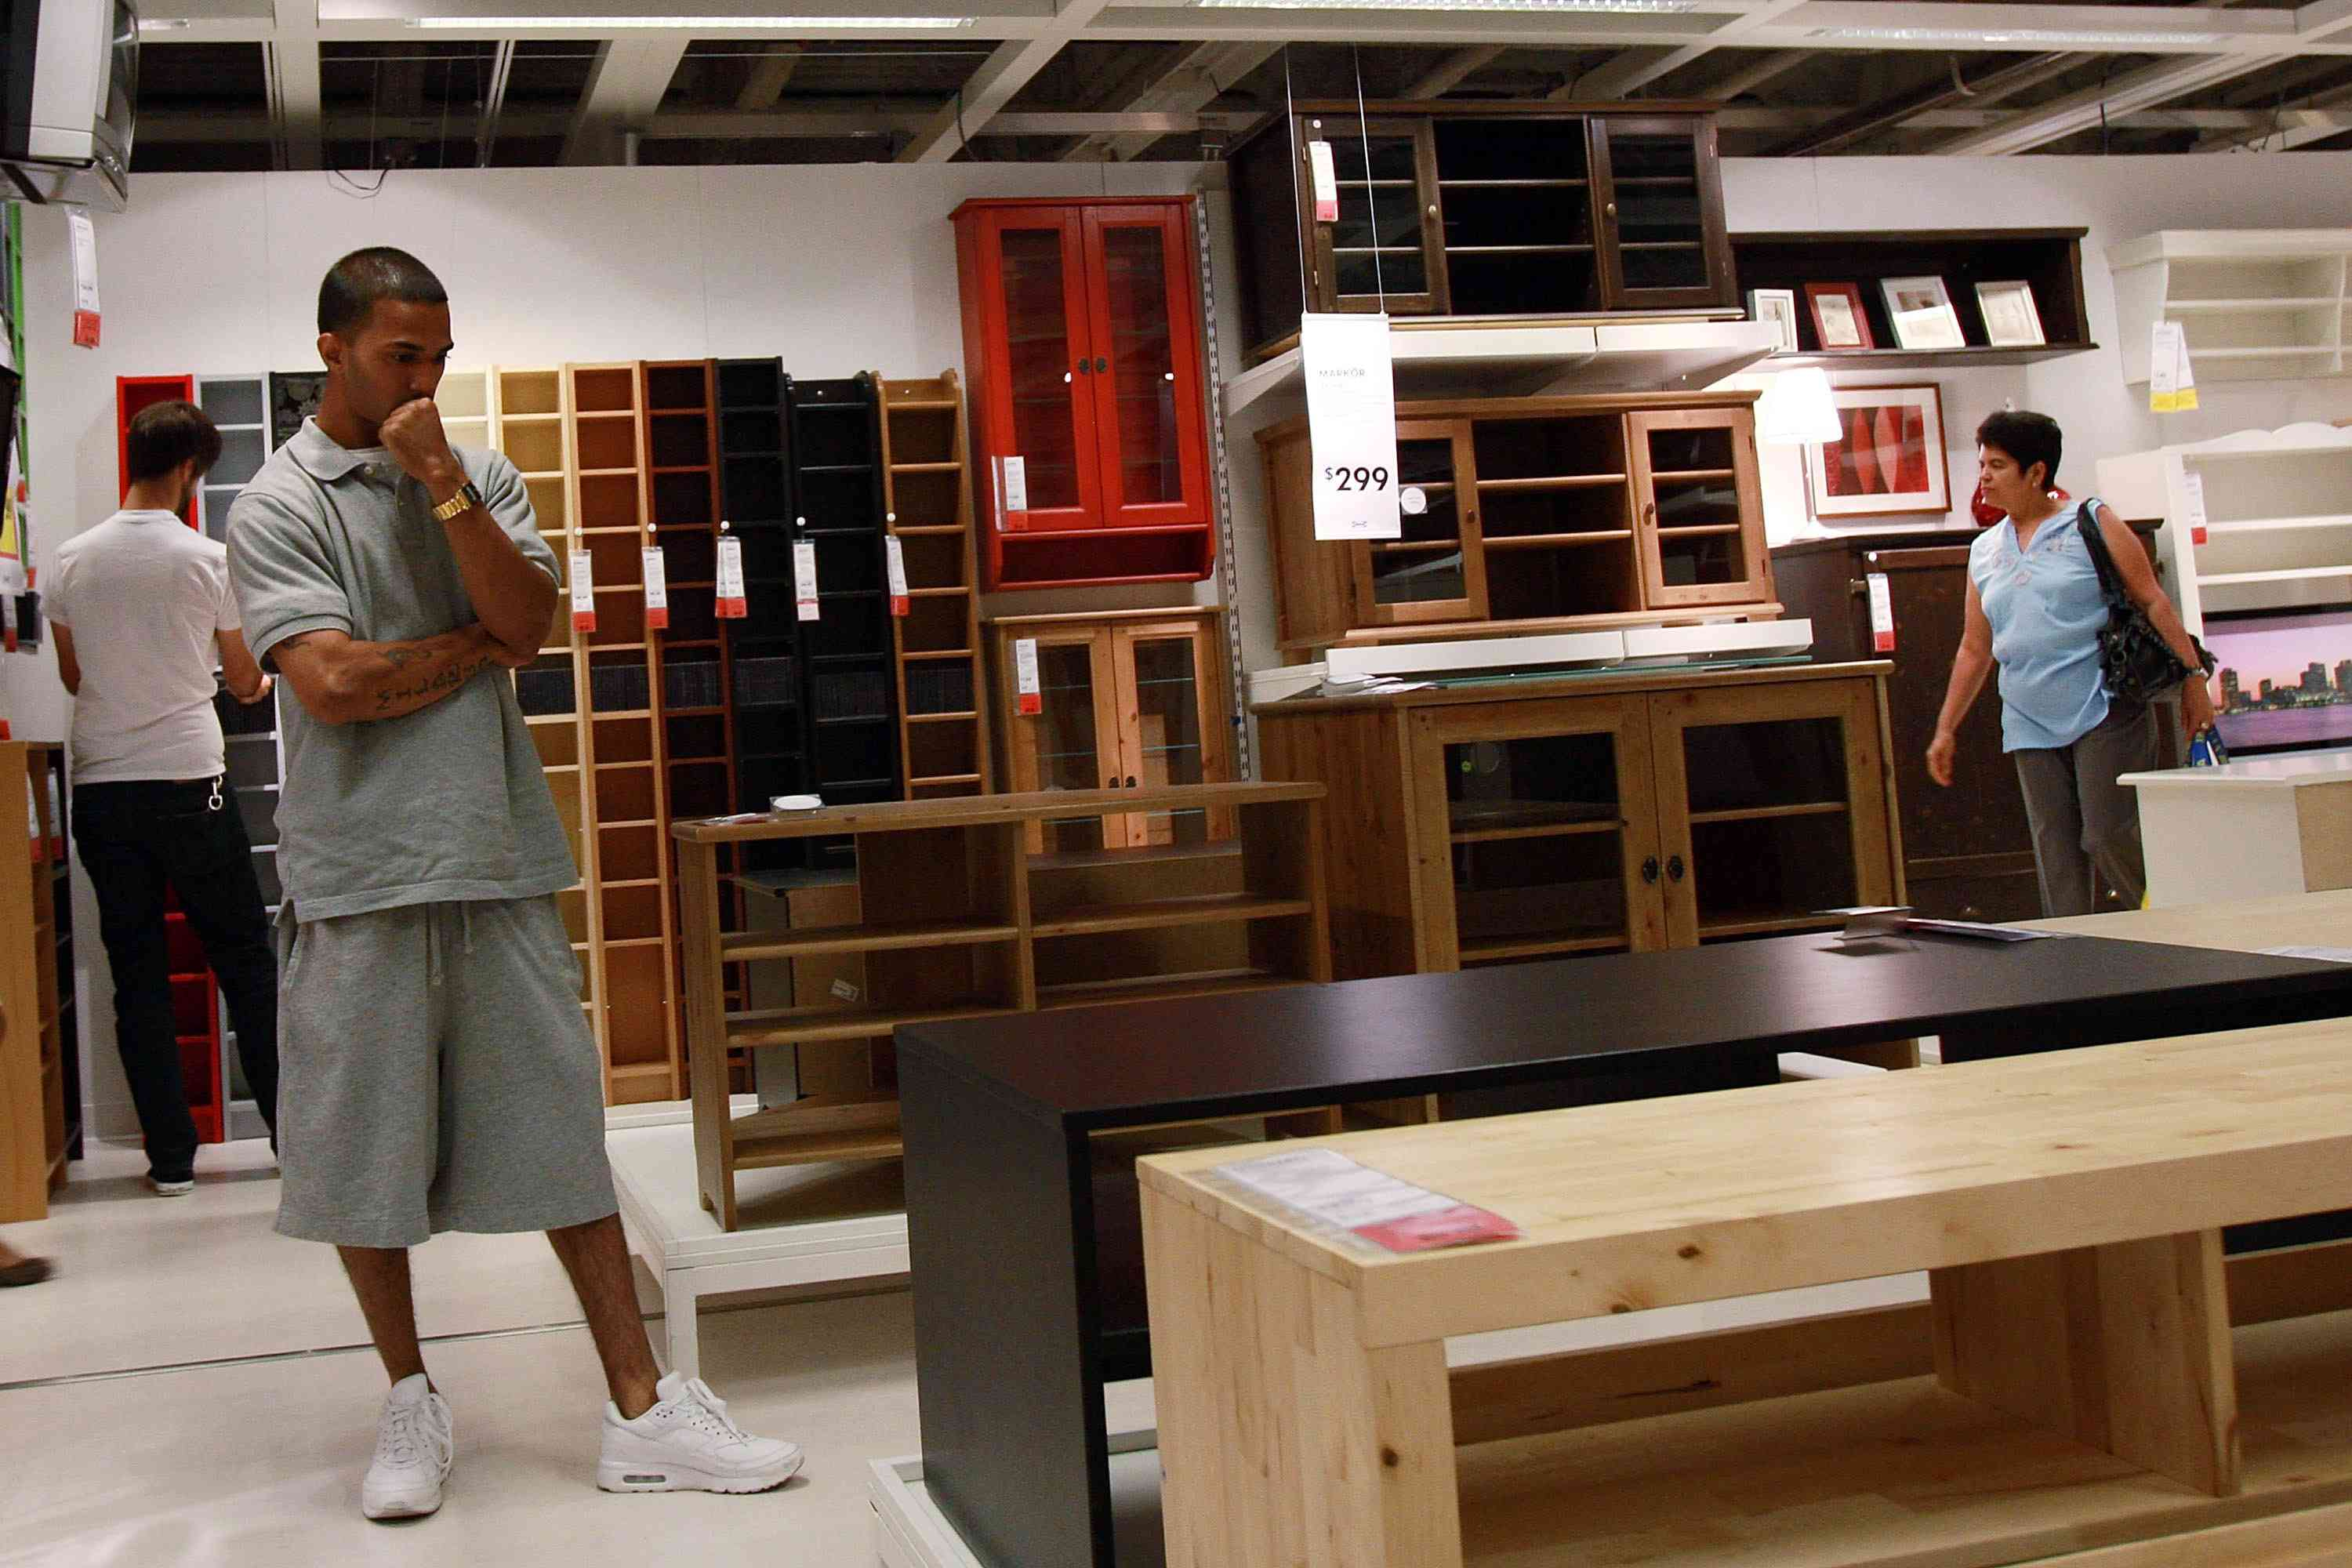 More shopping inside Ikea Red Hook